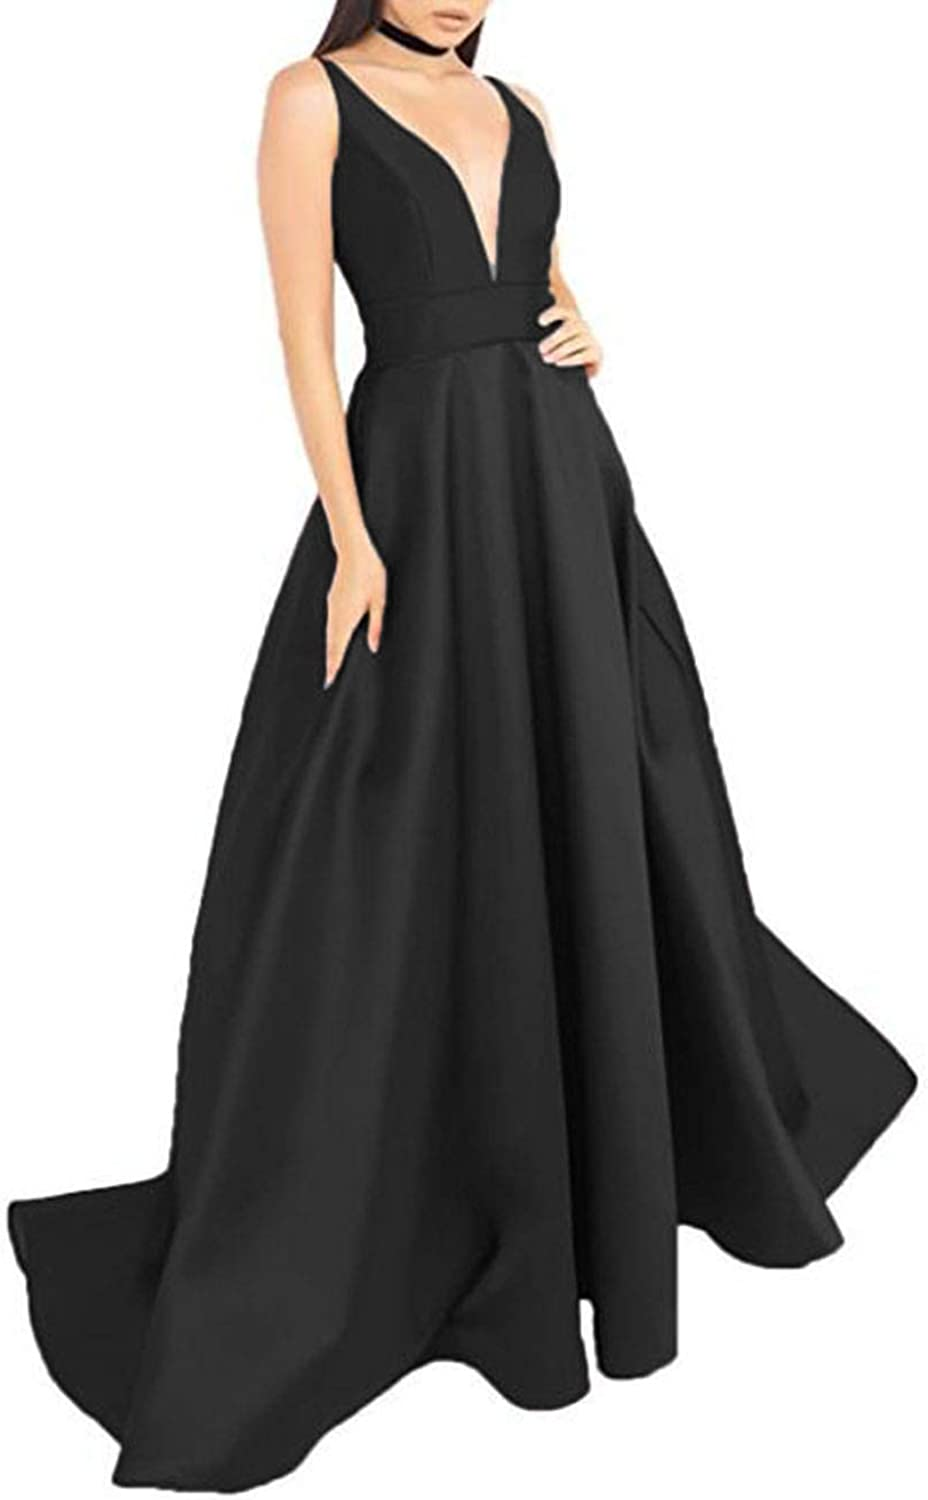 Alilith.Z Sexy Plunging V Neck Satin Prom Dresses Long Formal Evening Dress Party Gowns for Women with Pockets